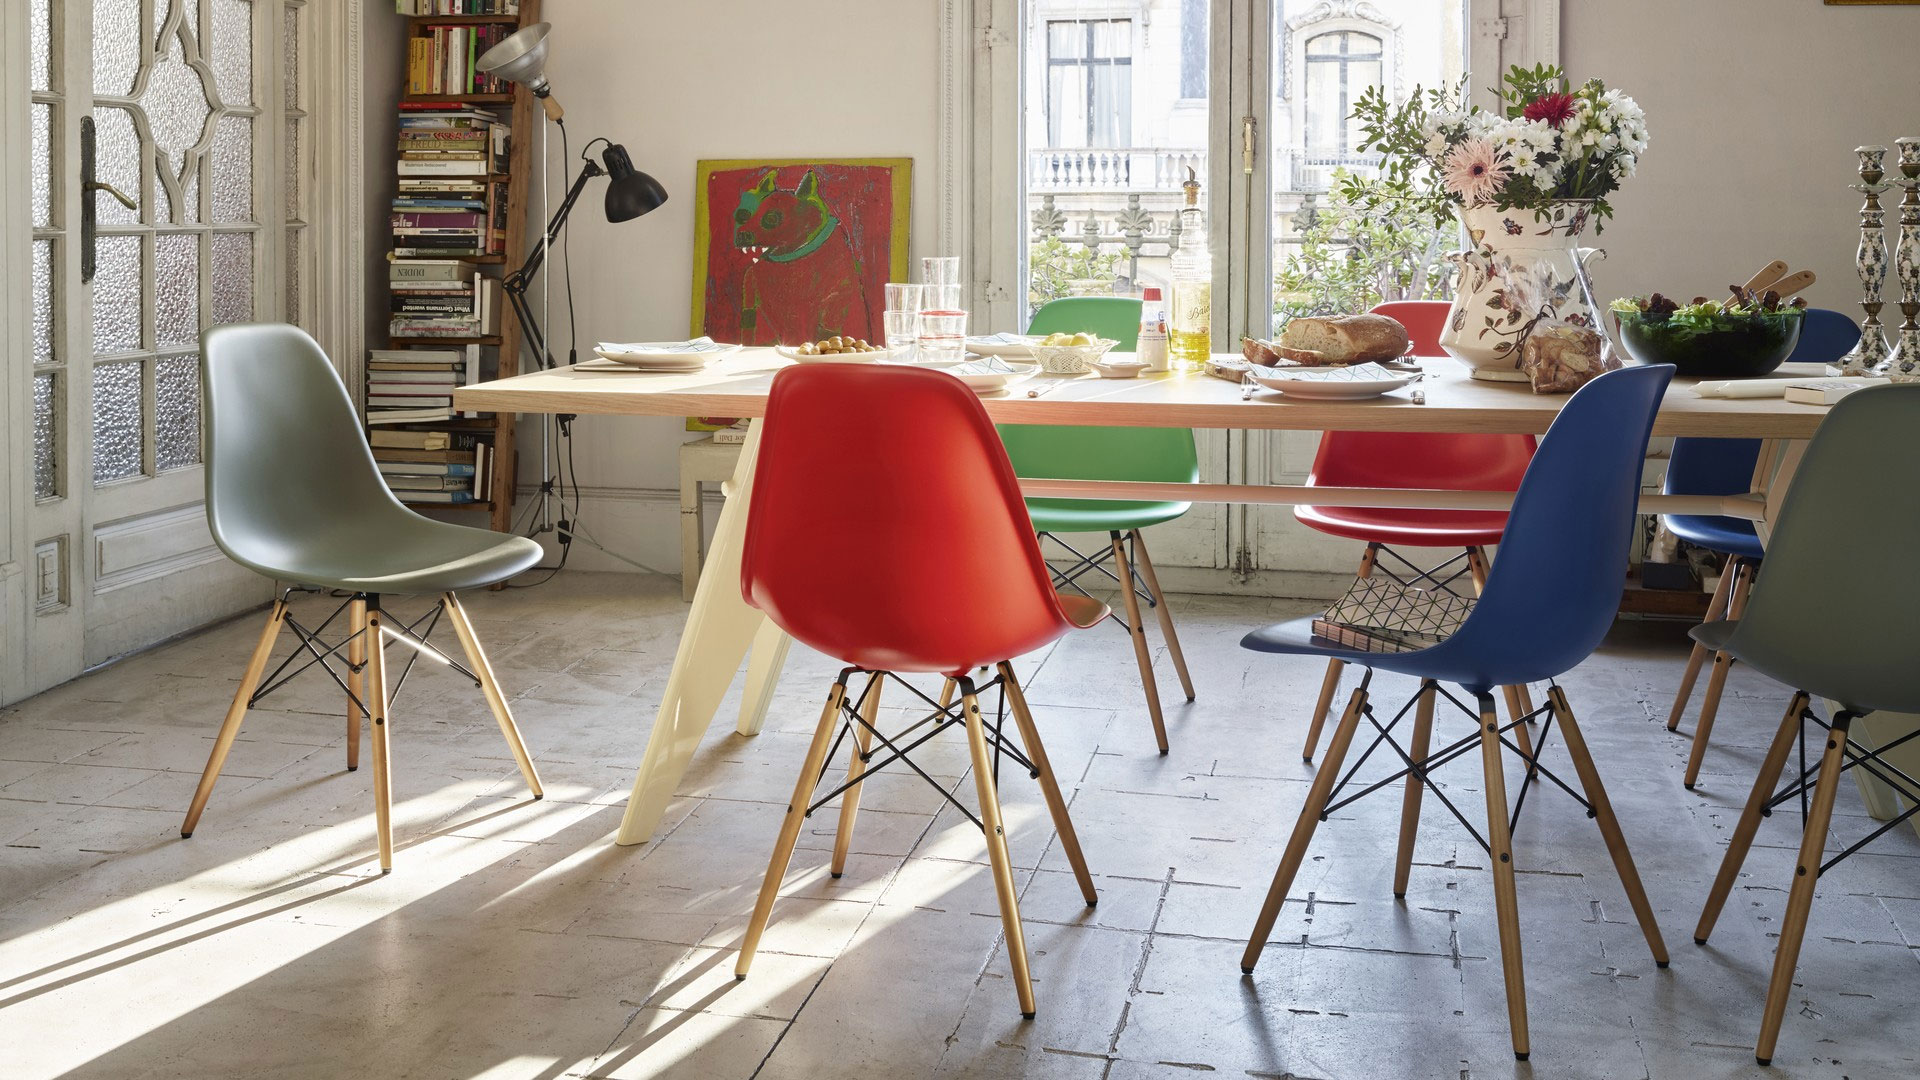 Mix and match: verschillende eetkamerstoelen